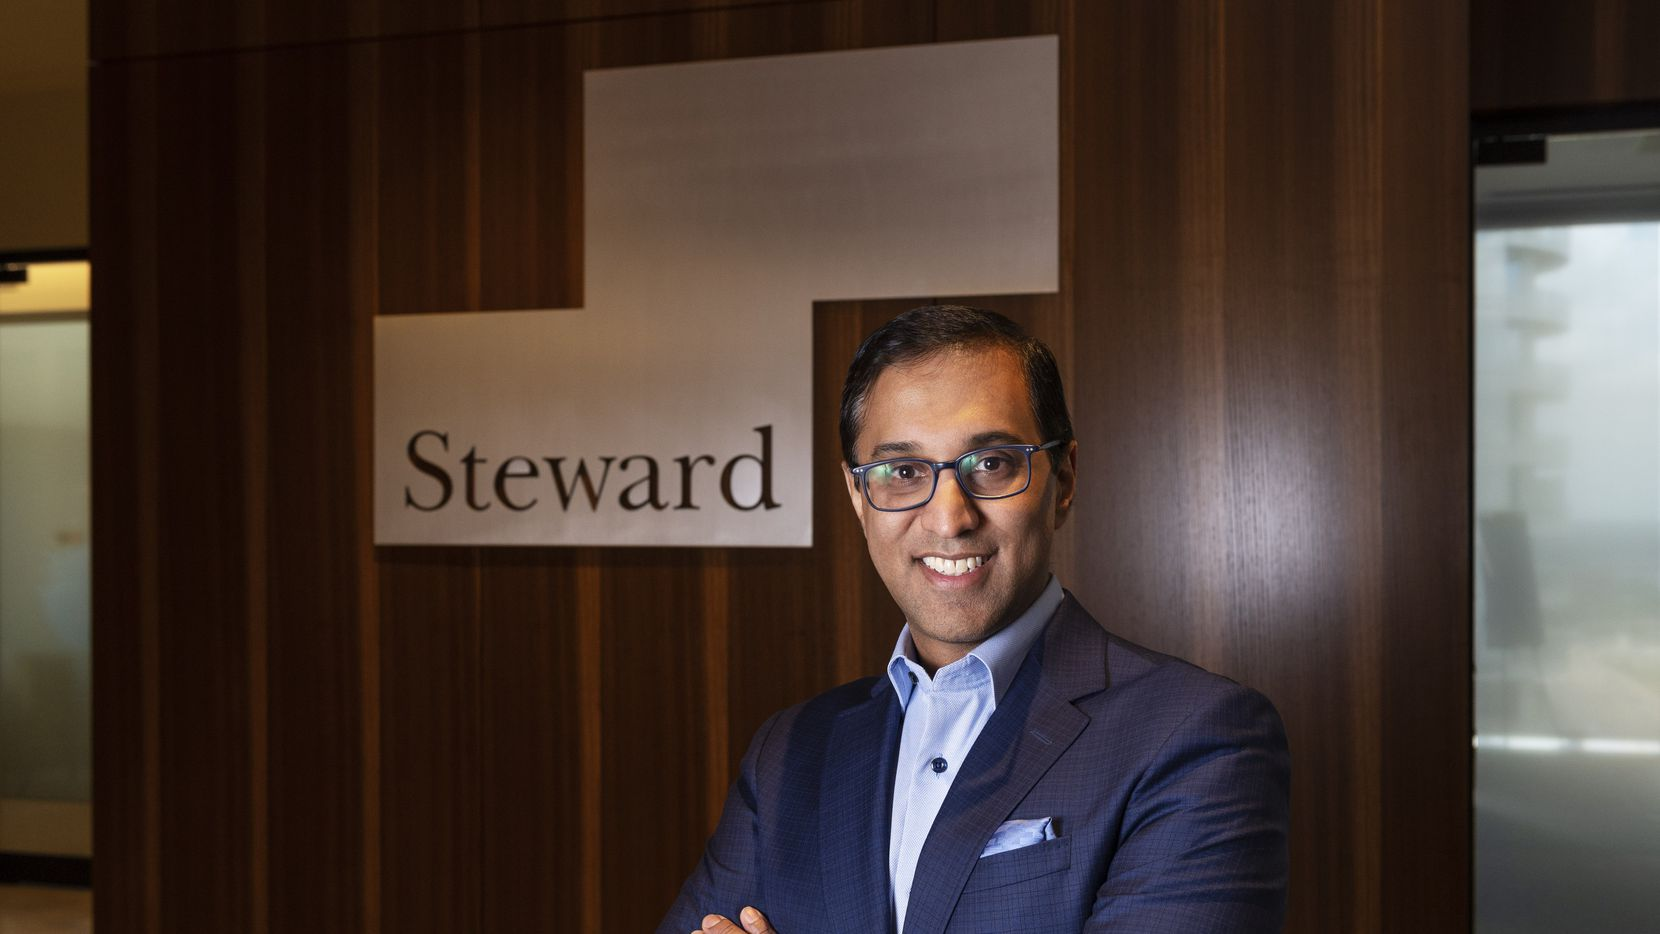 """Dr. Sanjay Shetty, president of Steward North America, says the company wants to more broadly become """"part of the fabric of the state. We're very much a part of Texas."""""""